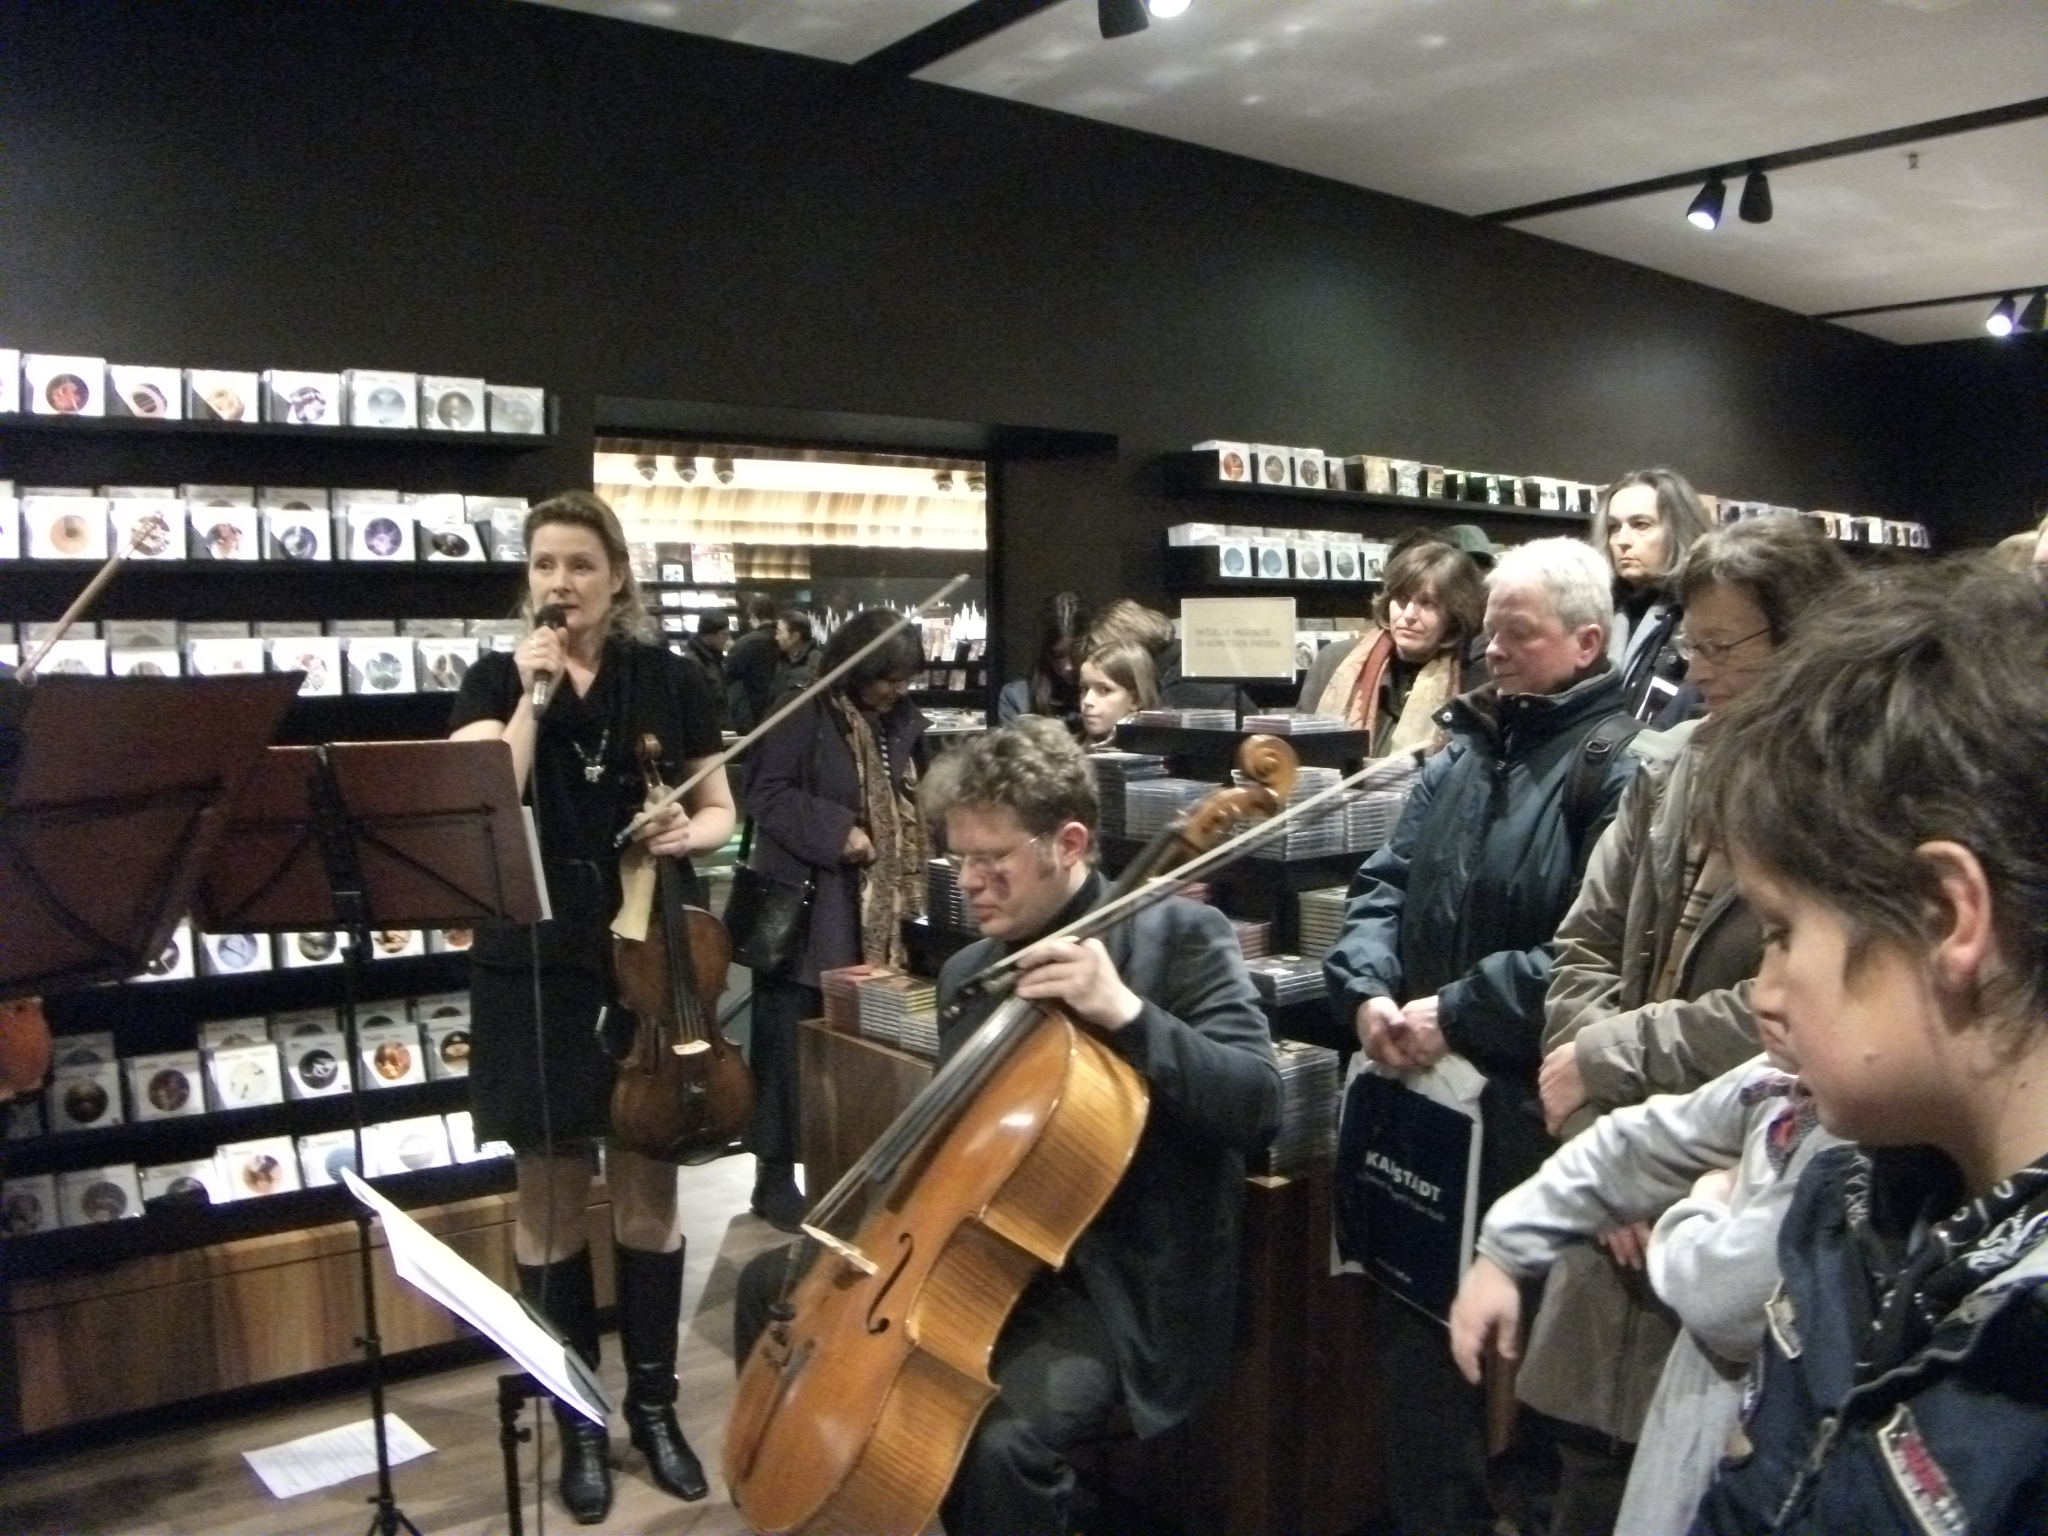 CD Showcase at Ludwig Beck München